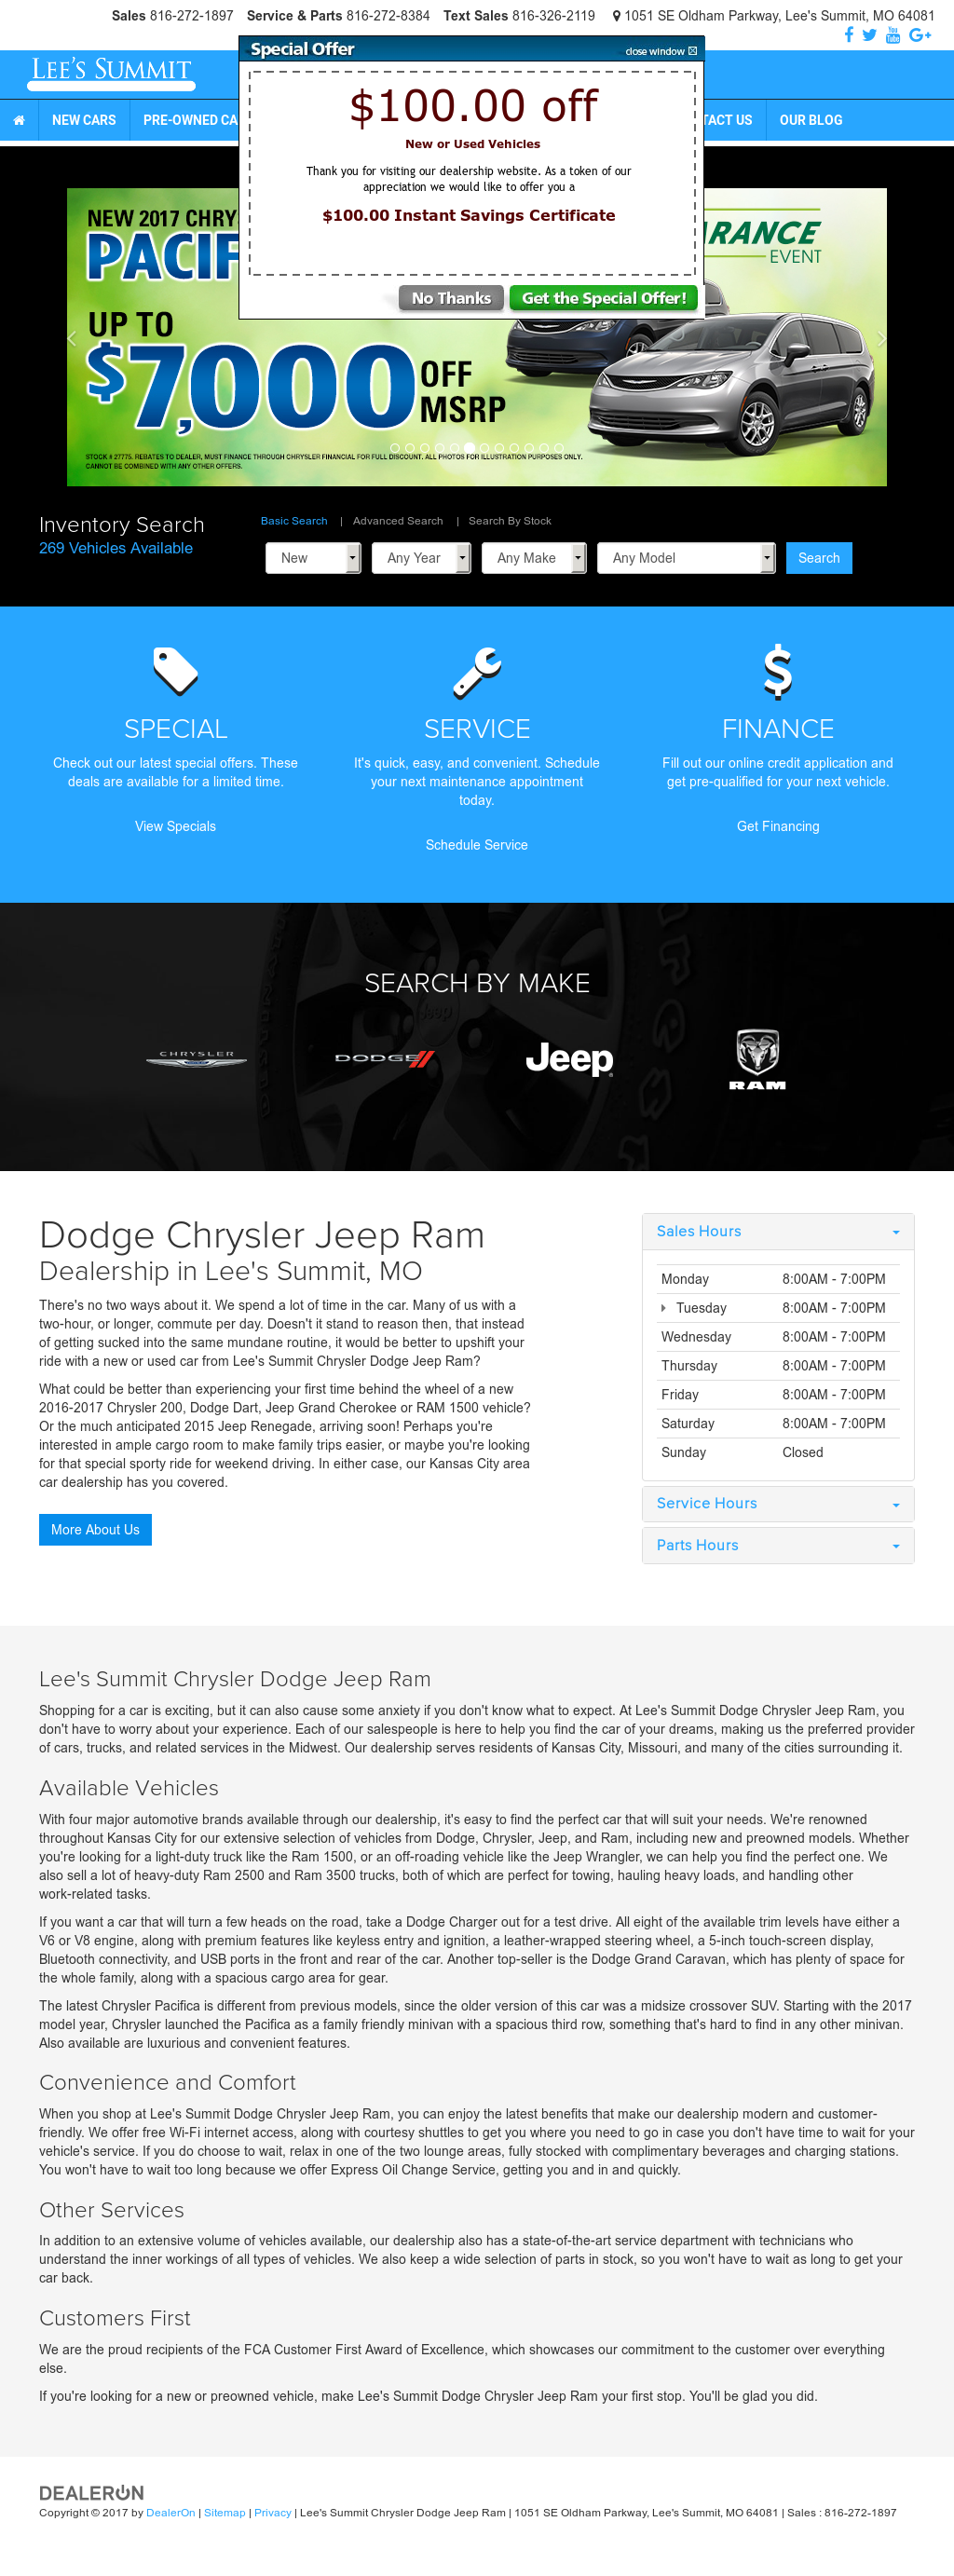 Lee s Summit Chrysler Dodge Jeep Ram petitors Revenue and